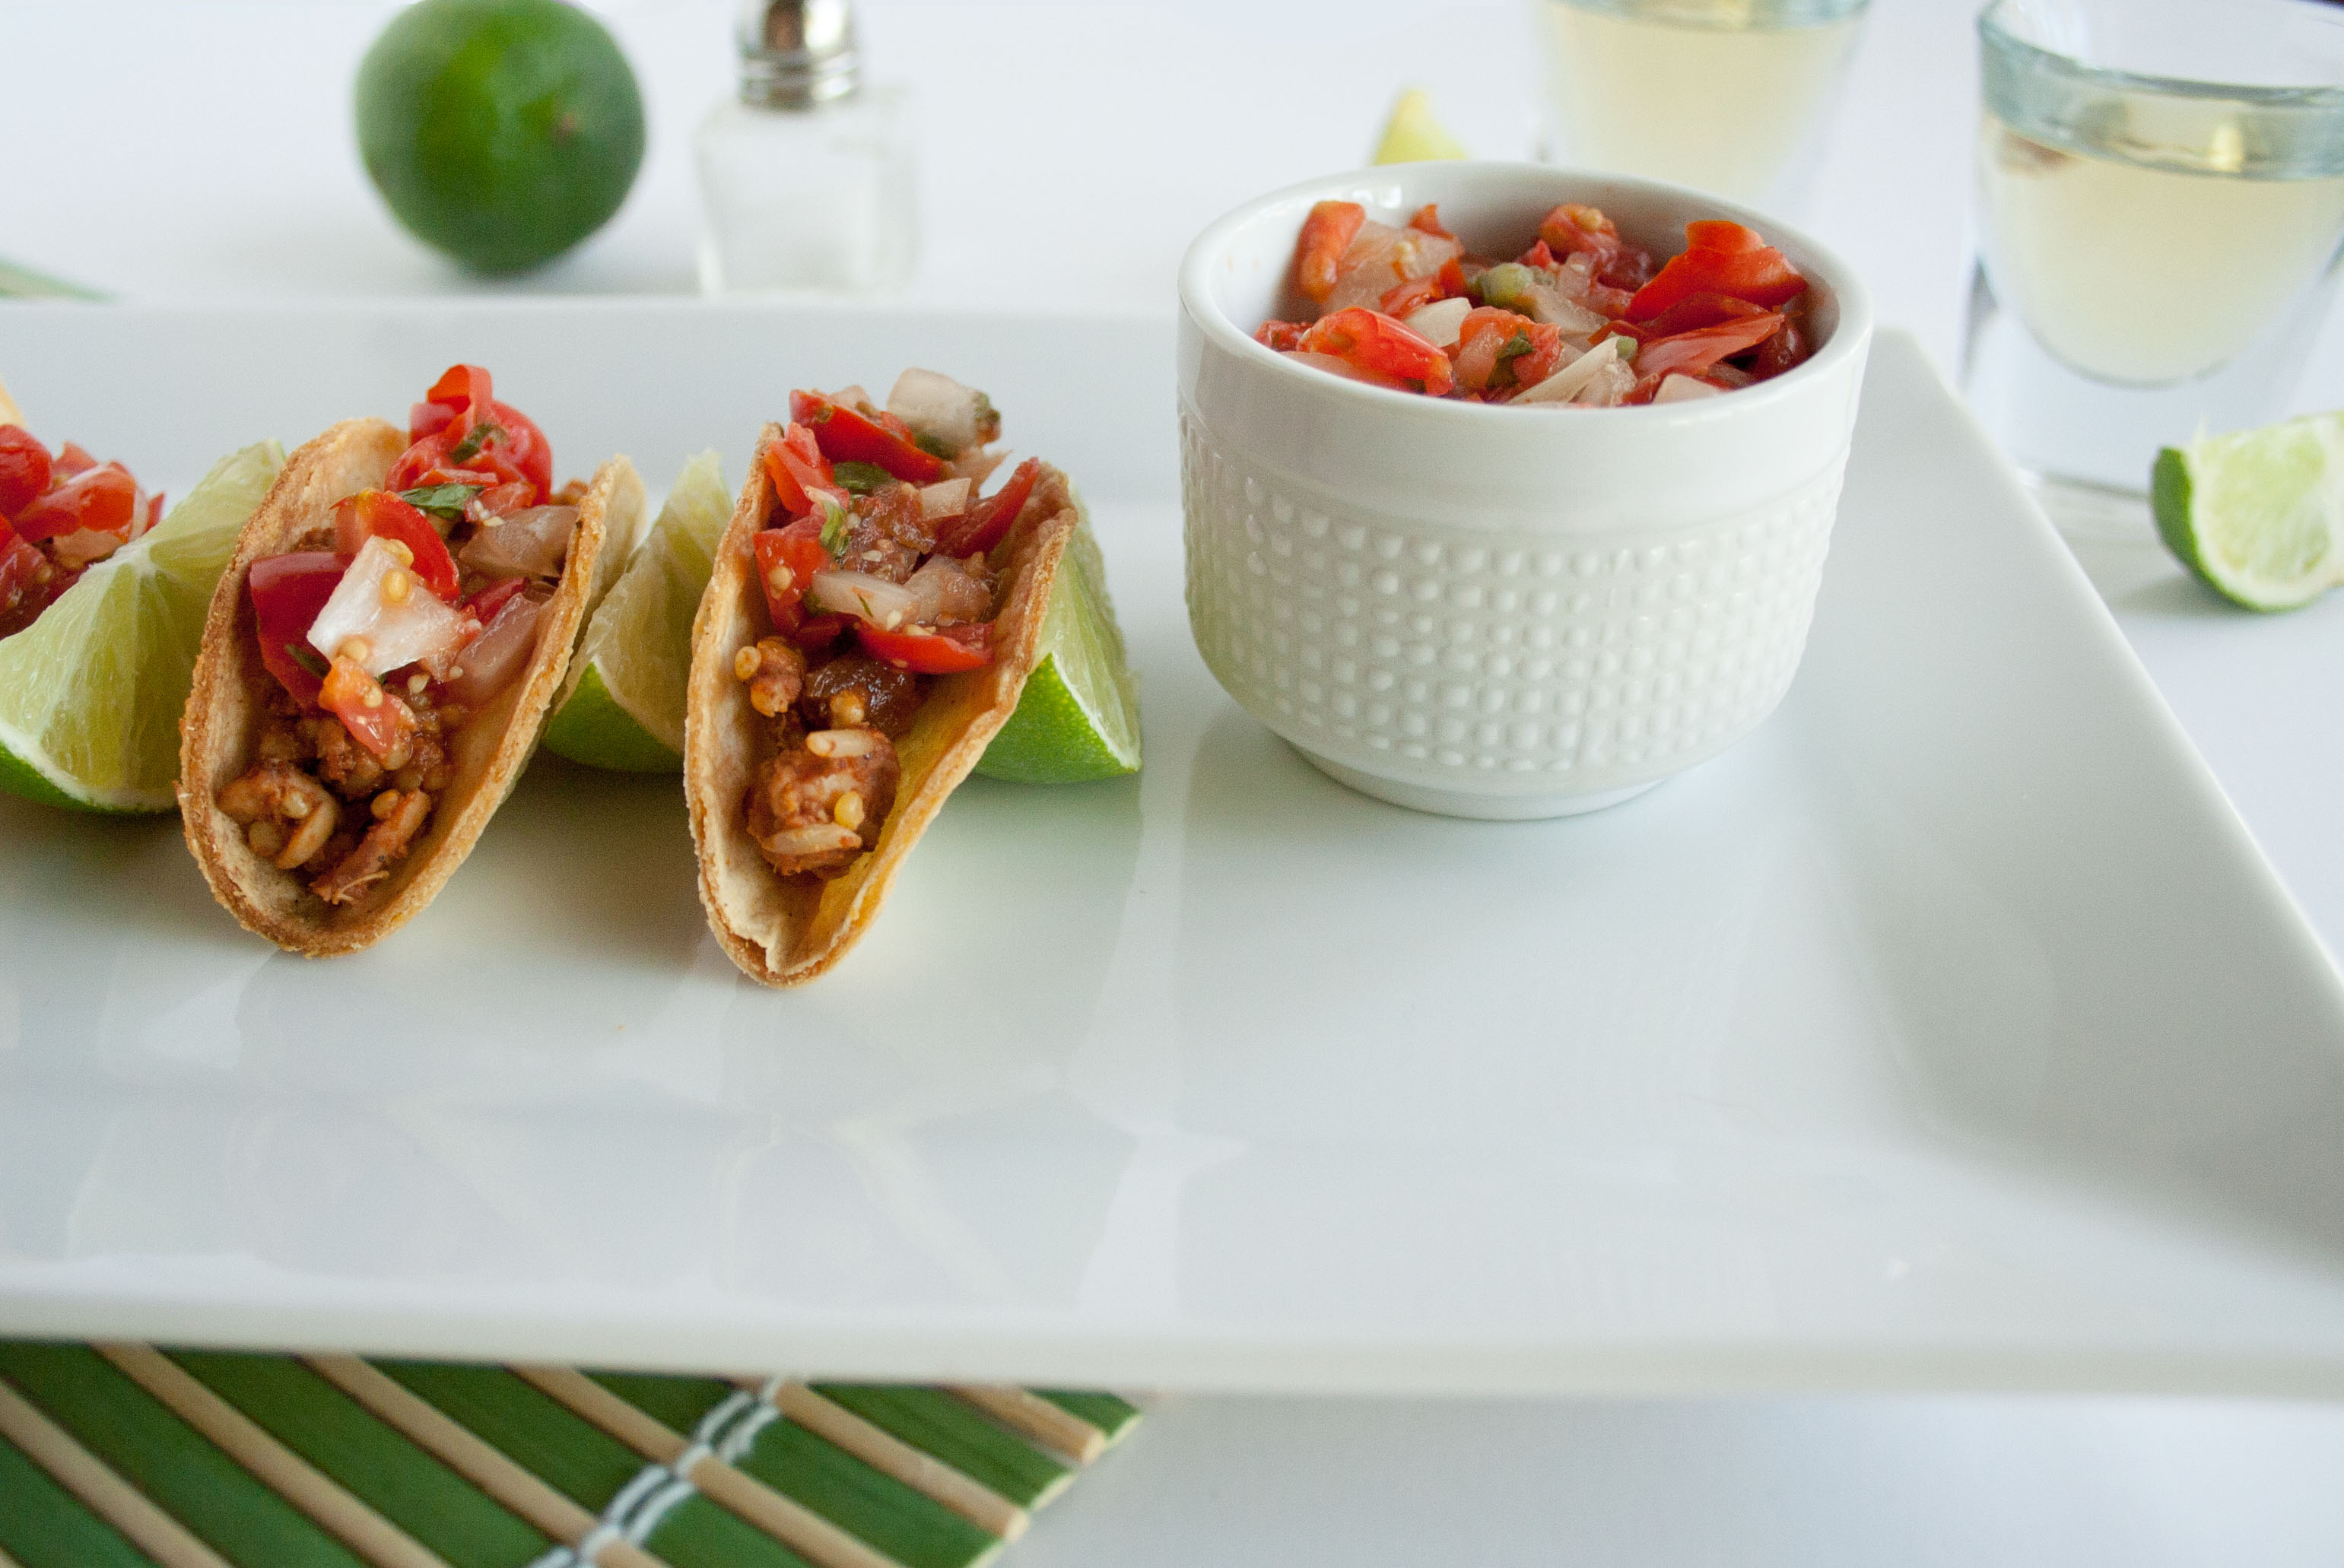 Mini Tempeh Tacos with Pico de Gallo on plate.